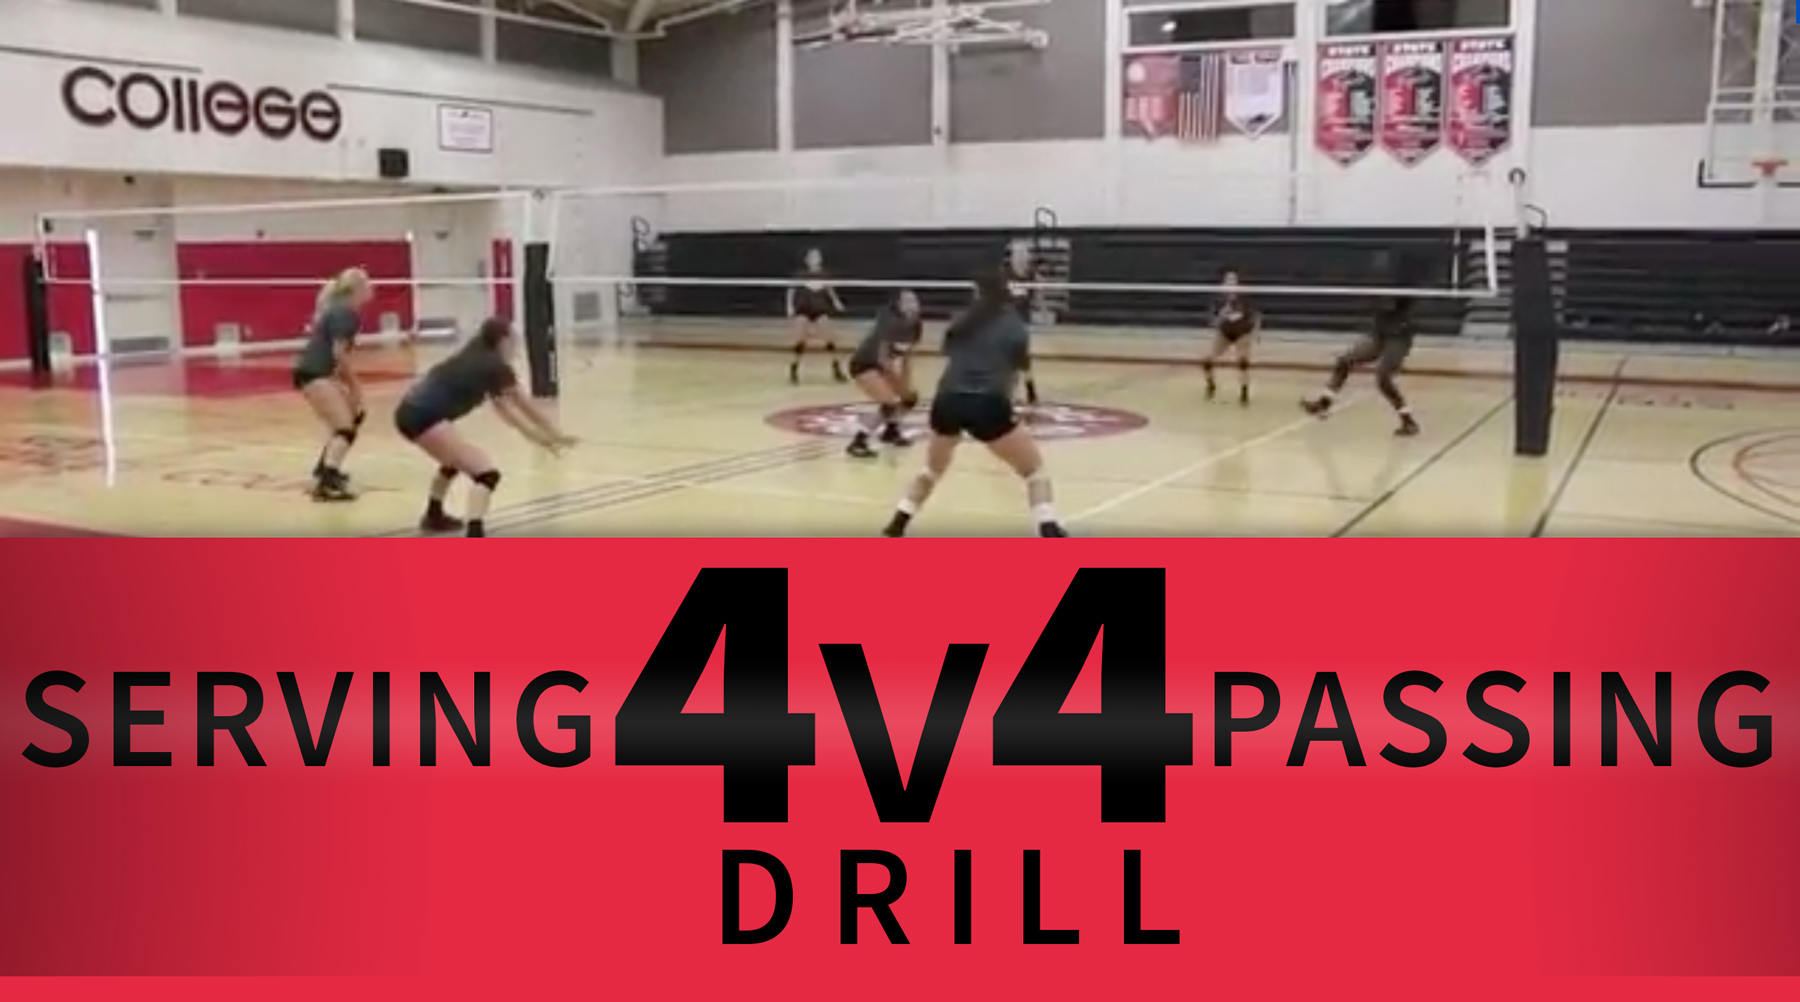 4 V 4 Serving And Passing Drill